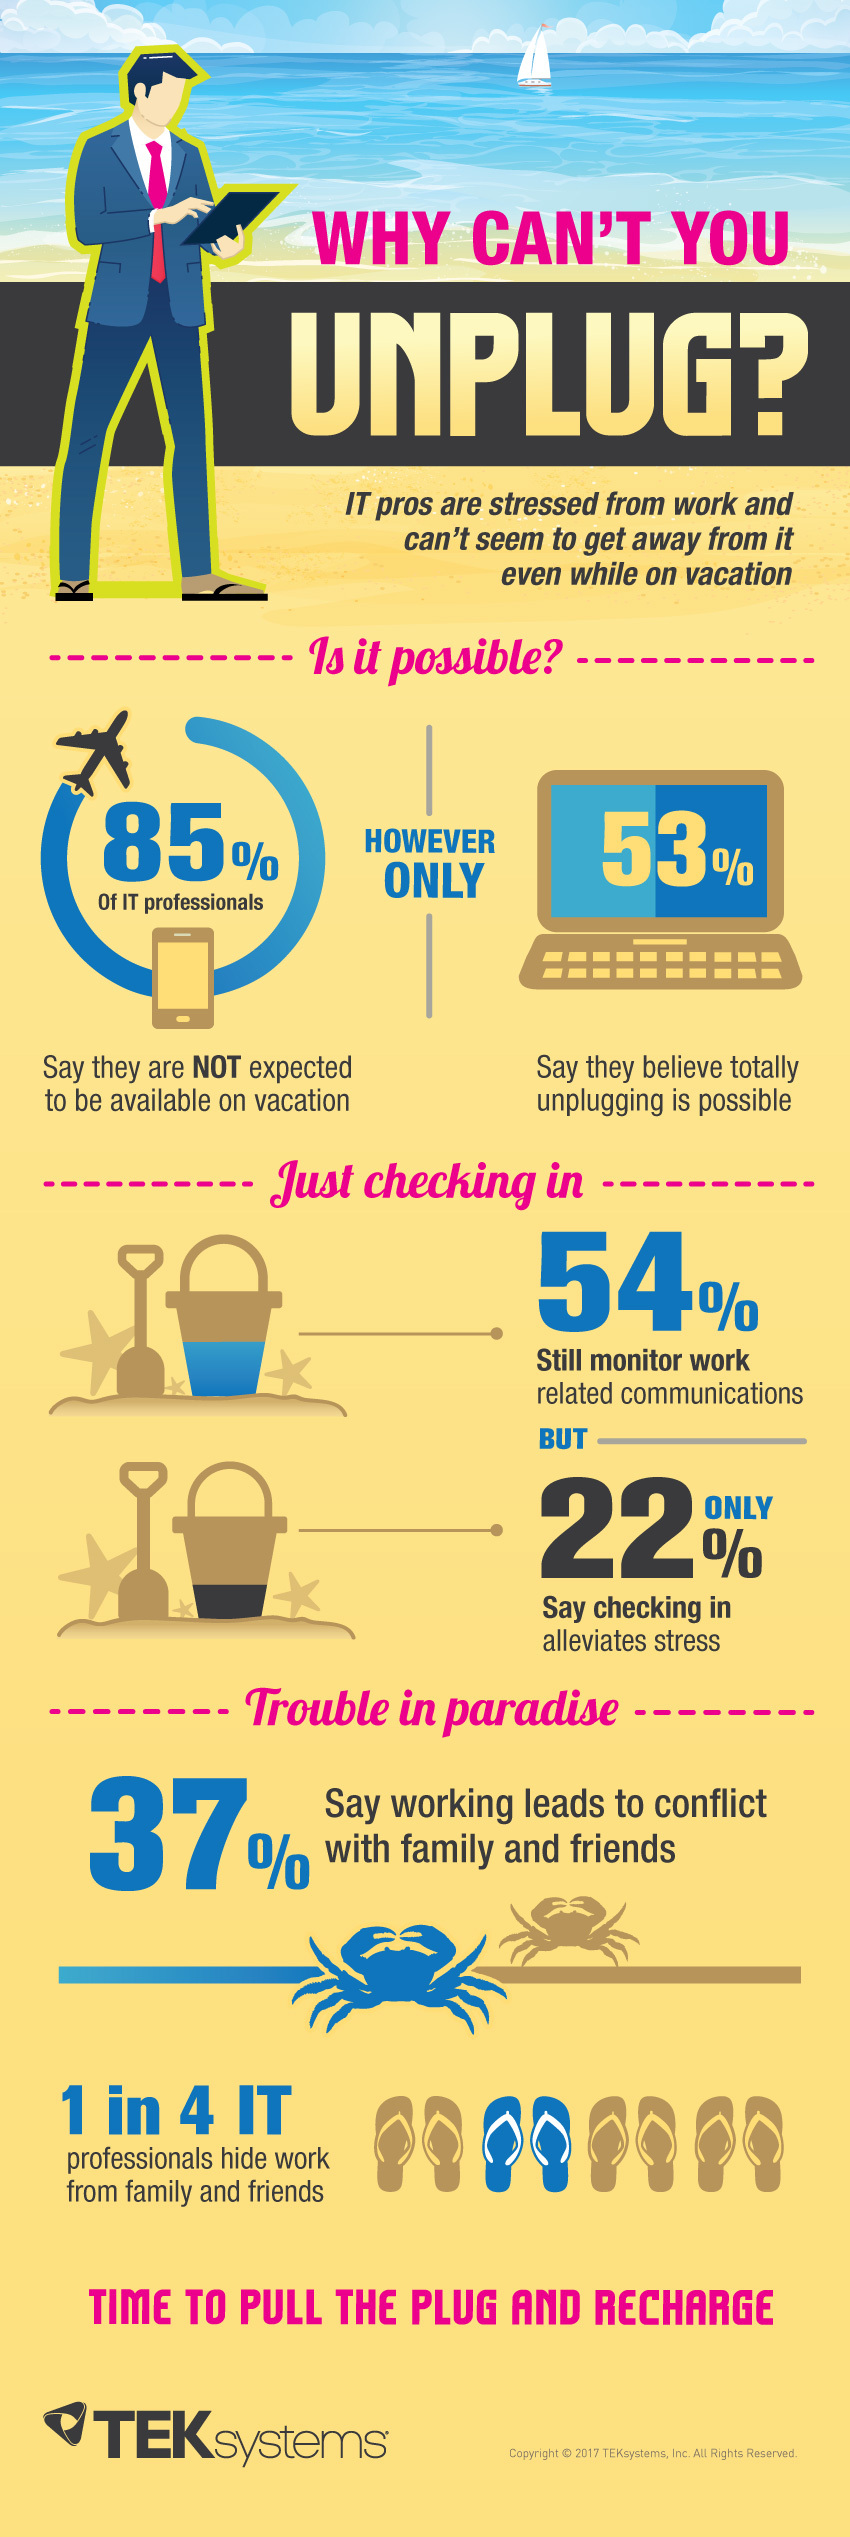 TEKsystems' IT Worker Stress Test and Work/Life Balance Infographic (Graphic: Business Wire)